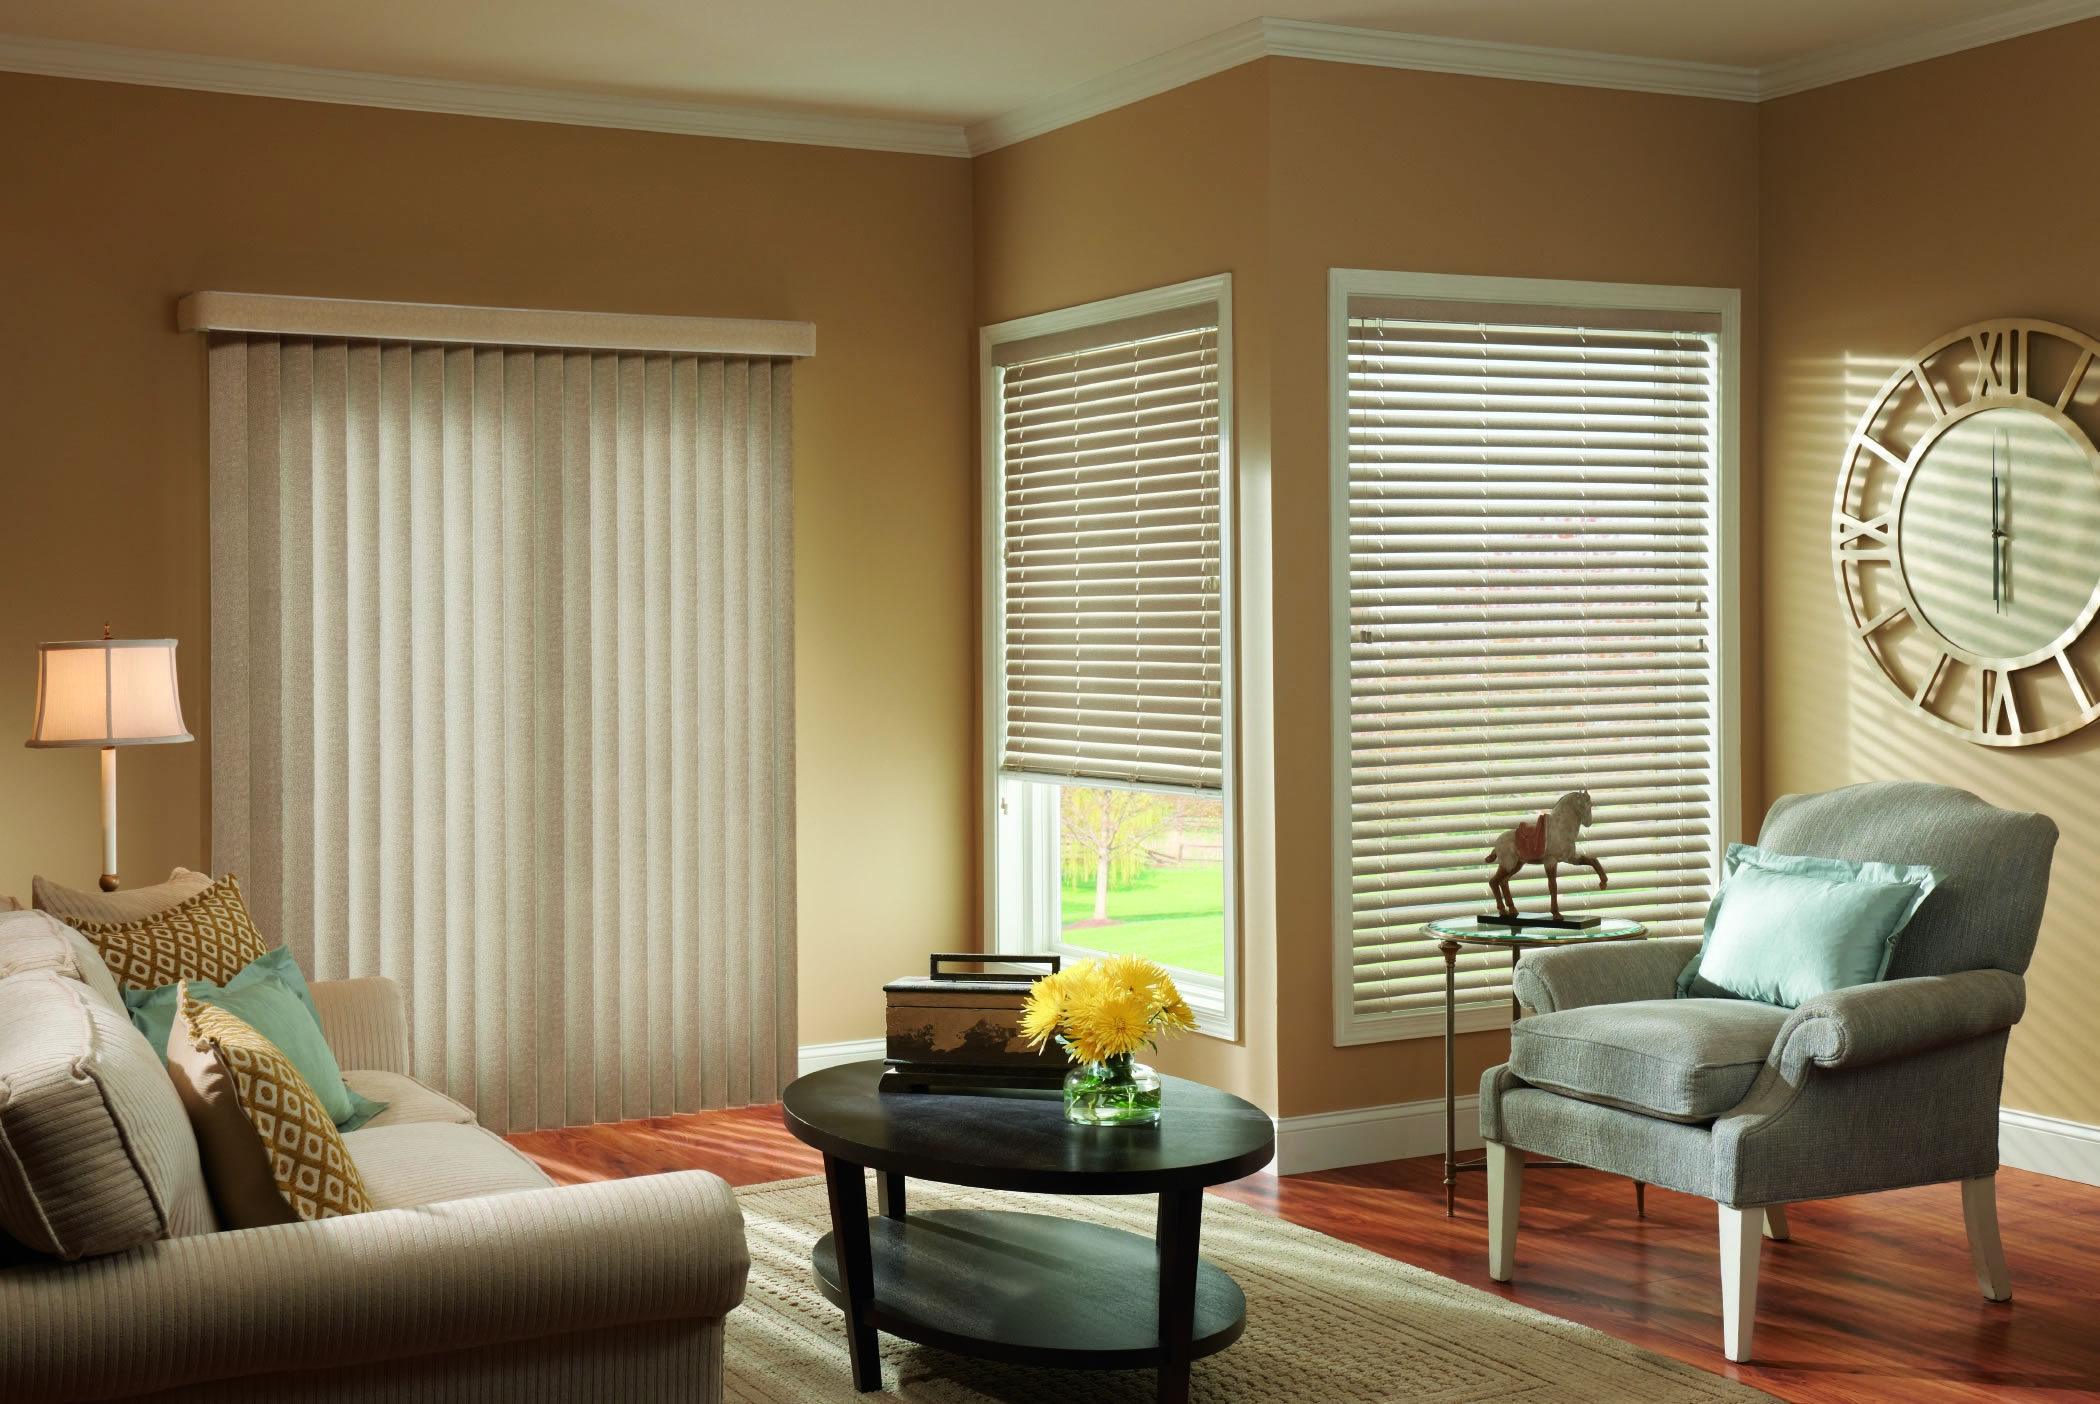 Better Blinds Vertical Blinds With Regard To Front Room Blinds (View 11 of 15)